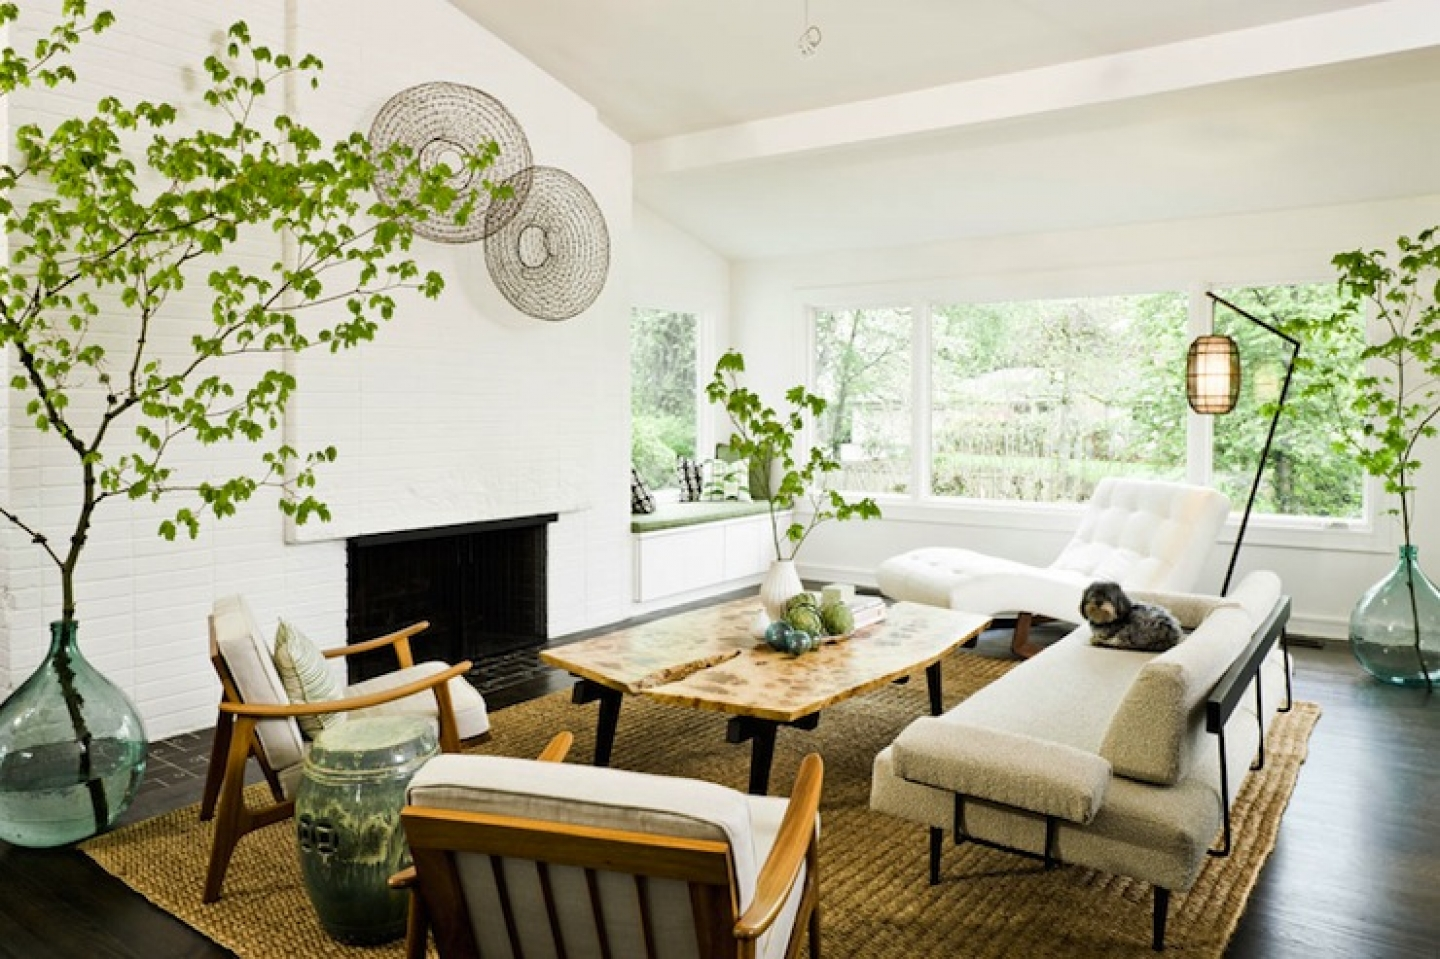 Interior Garden Design & Installation Dallas/Ft. Worth TX | Foliage ...